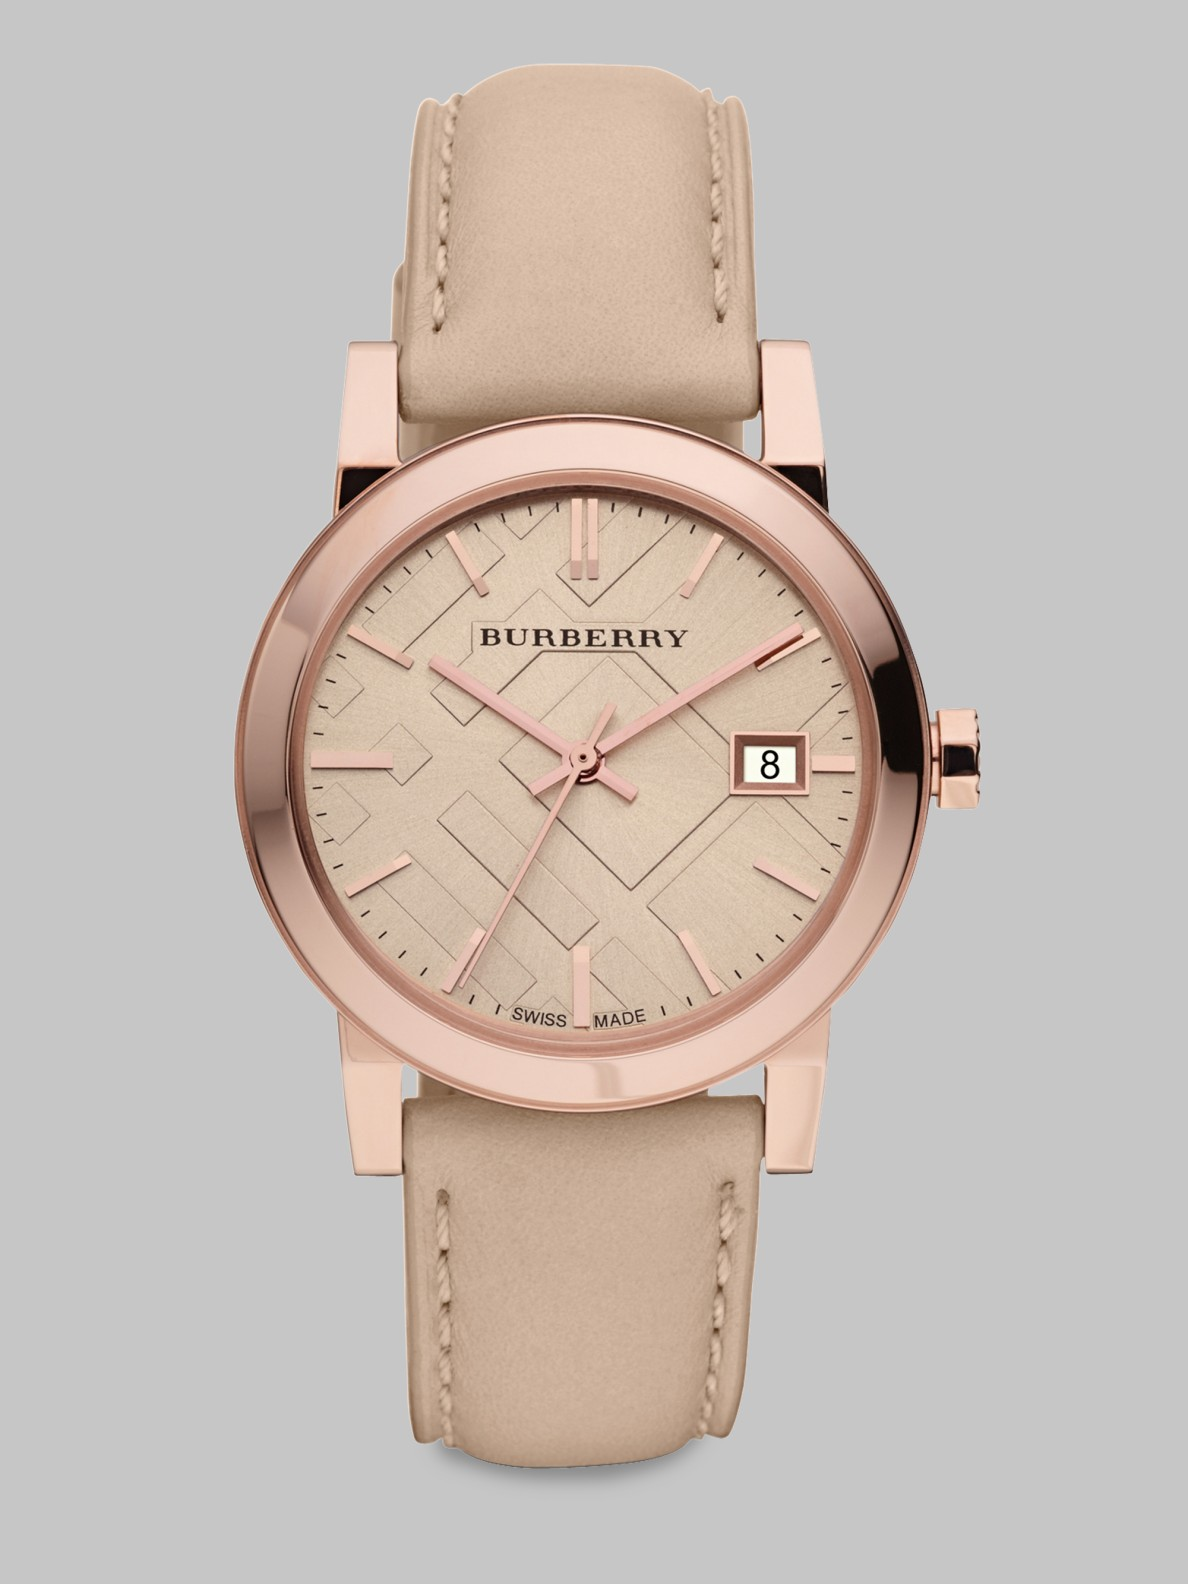 Lyst - Burberry Check Stamped Leather Strap Watchnude In Brown-4084